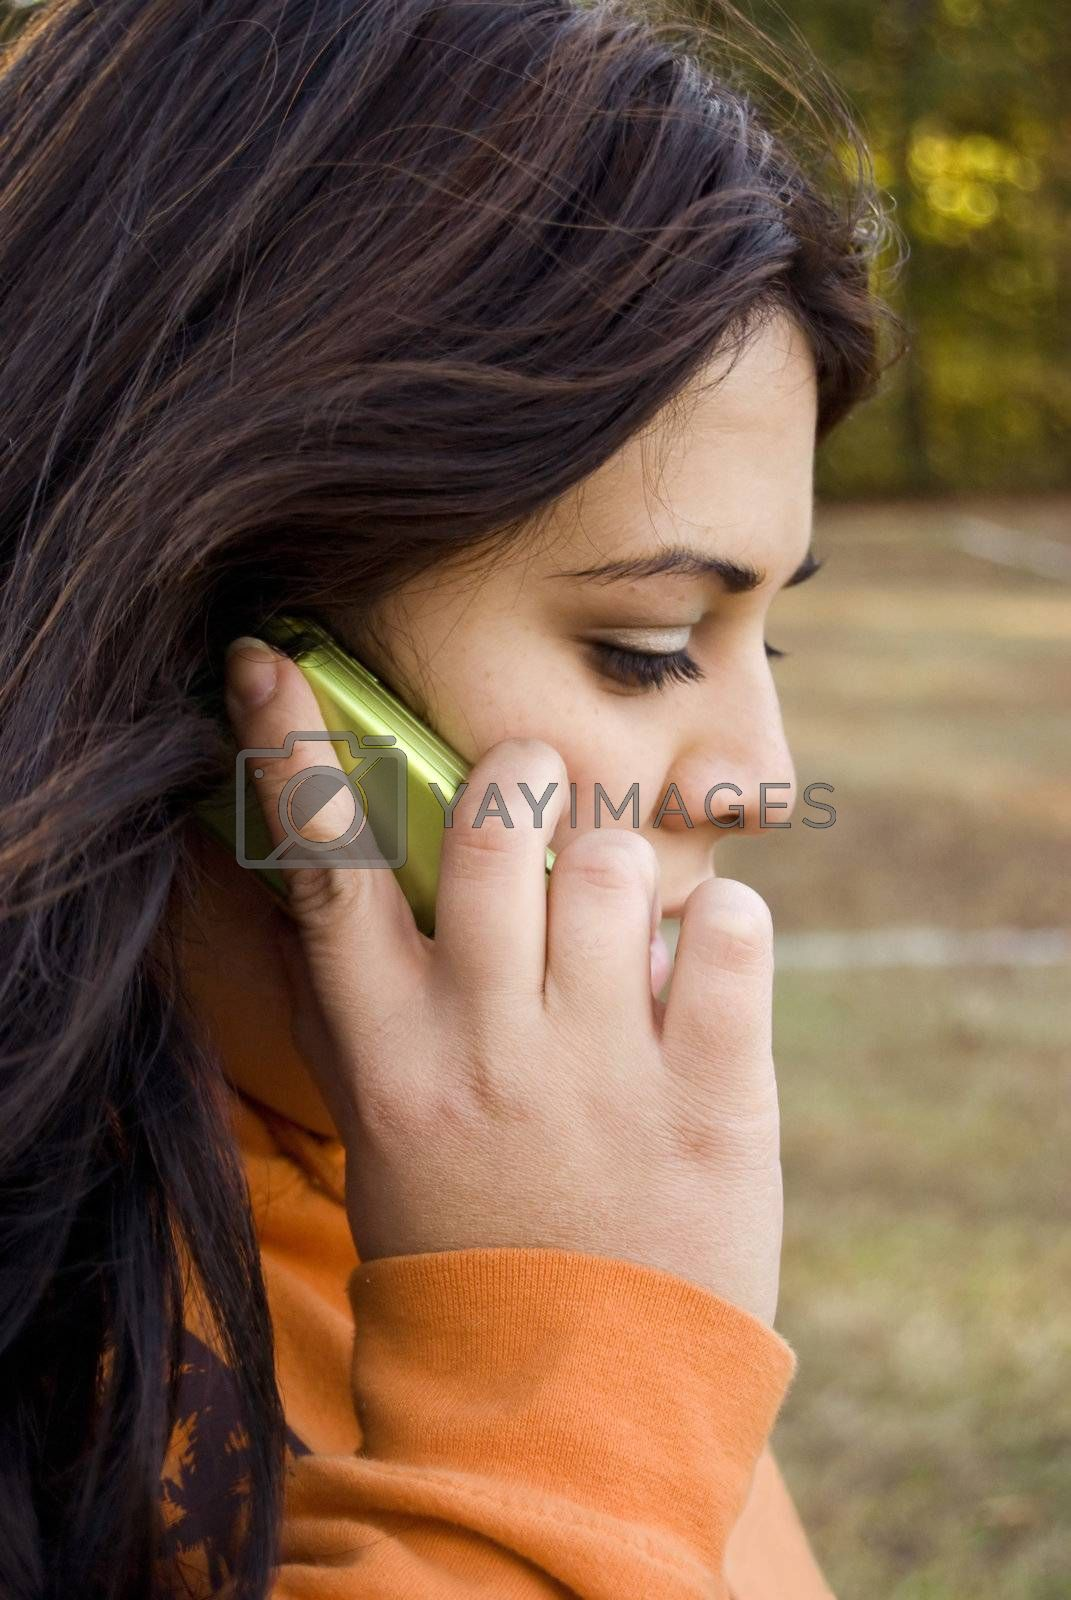 A beautiful young woman of latin descent talking on a cell phone.